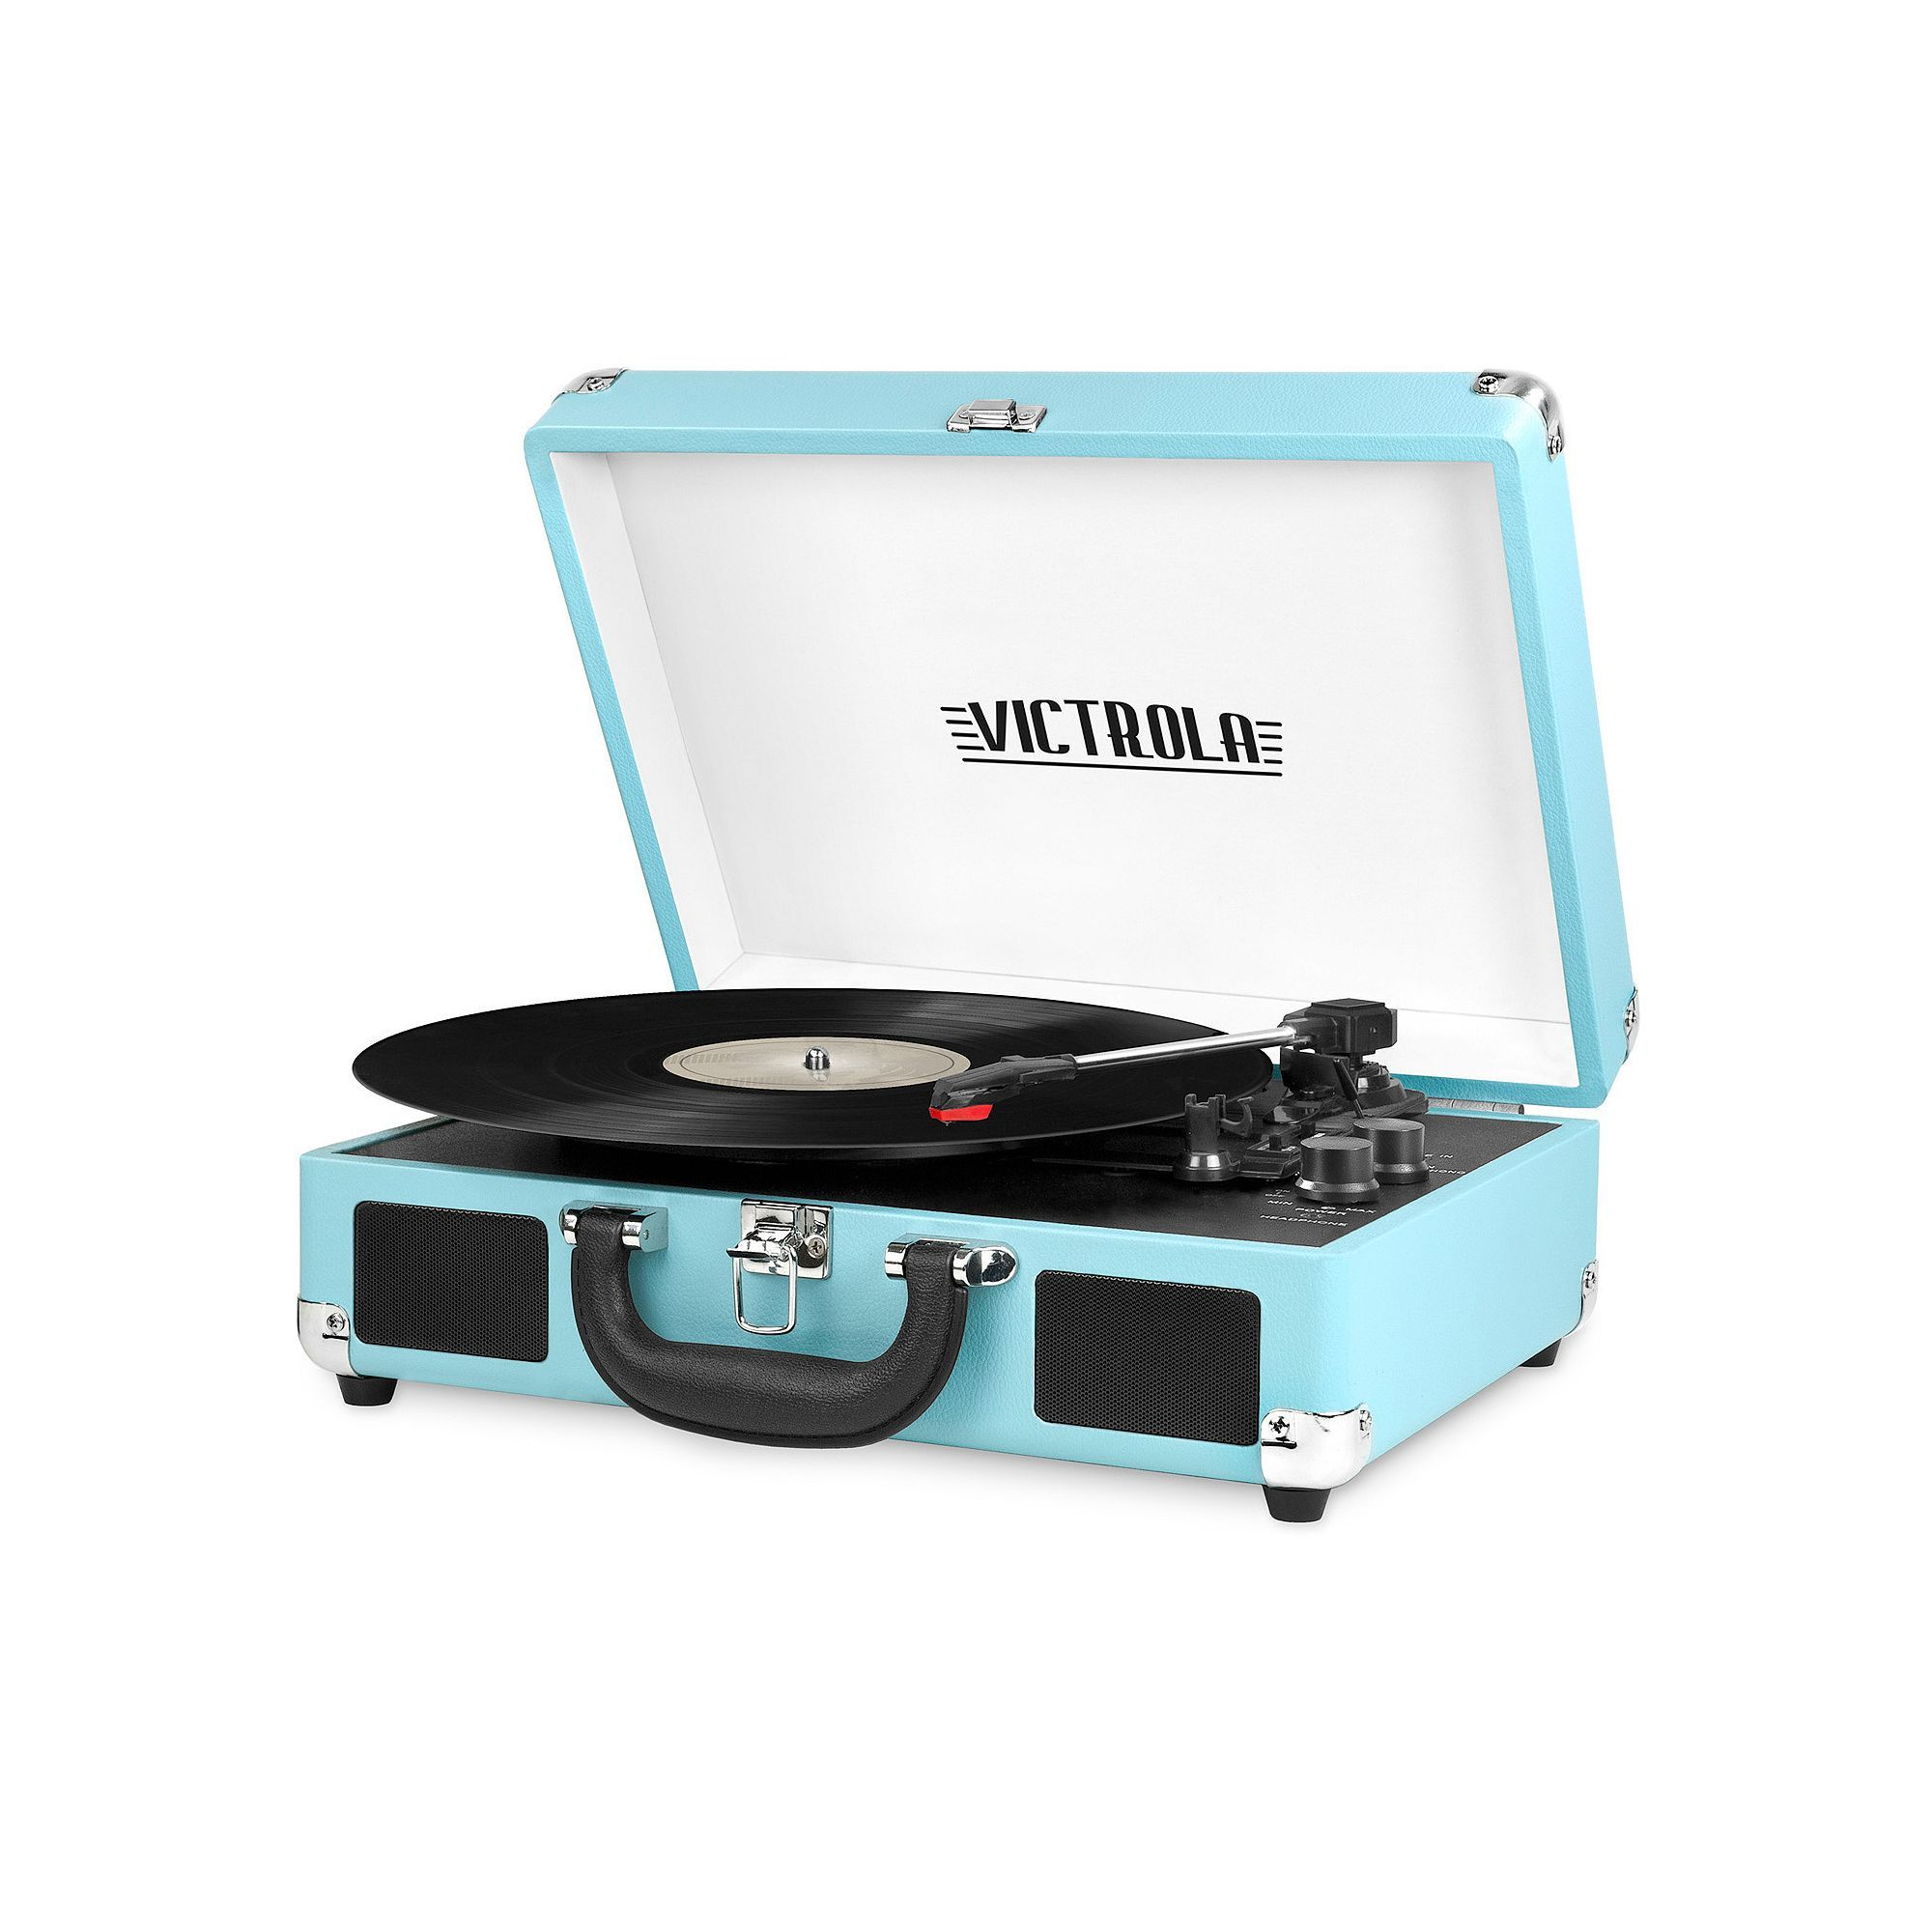 victrola portable suitcase record player with bluetooth red